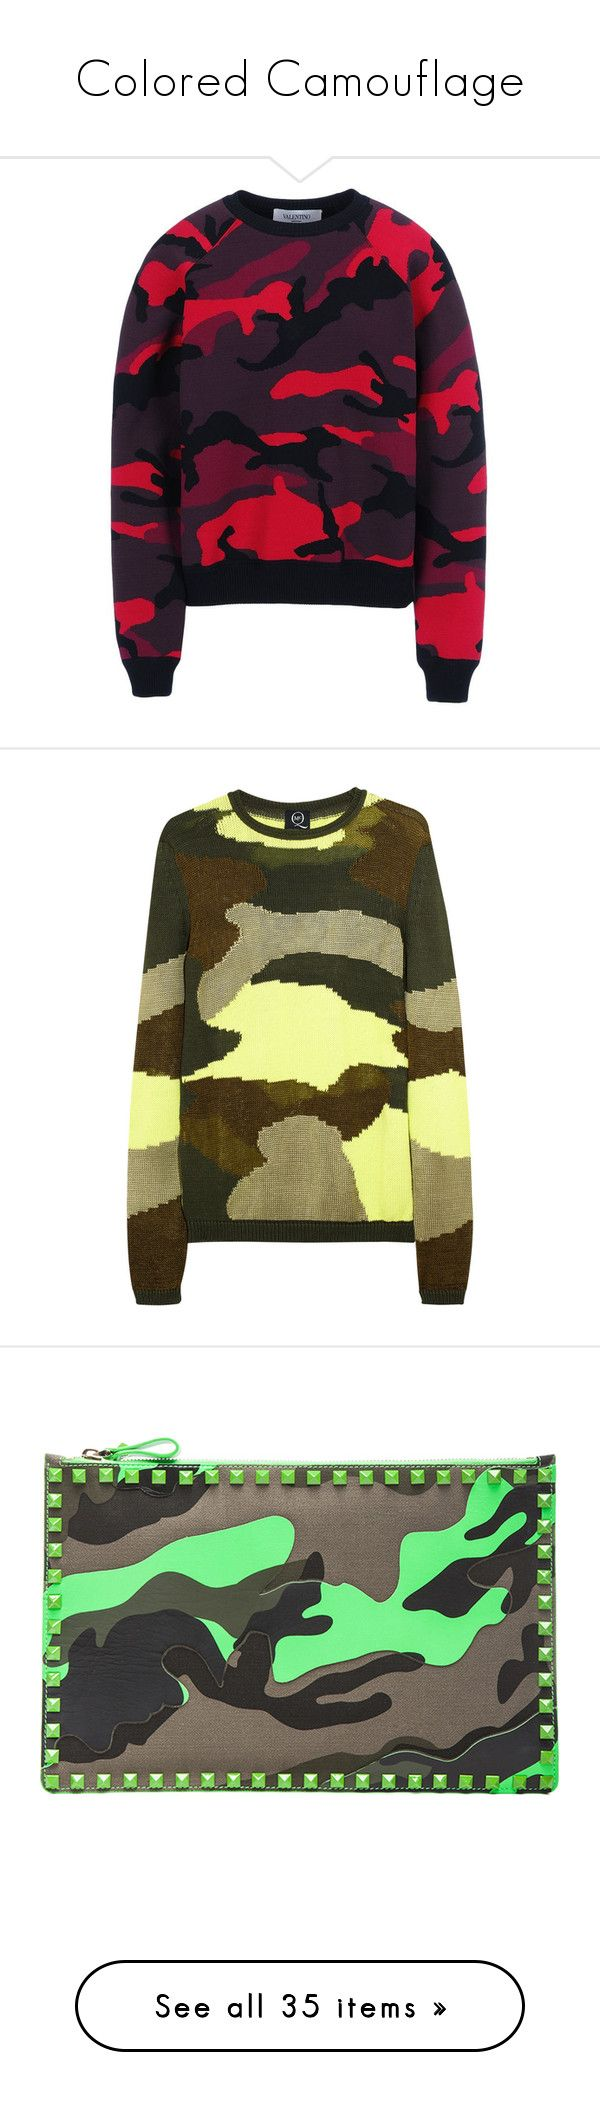 """""""Colored Camouflage"""" by nataliemcmahan ❤ liked on Polyvore featuring tops, hoodies, sweatshirts, sweaters, shirts, valentino, long sleeve knit shirt, ribbed long sleeve shirt, long-sleeve shirt and purple camo shirt"""